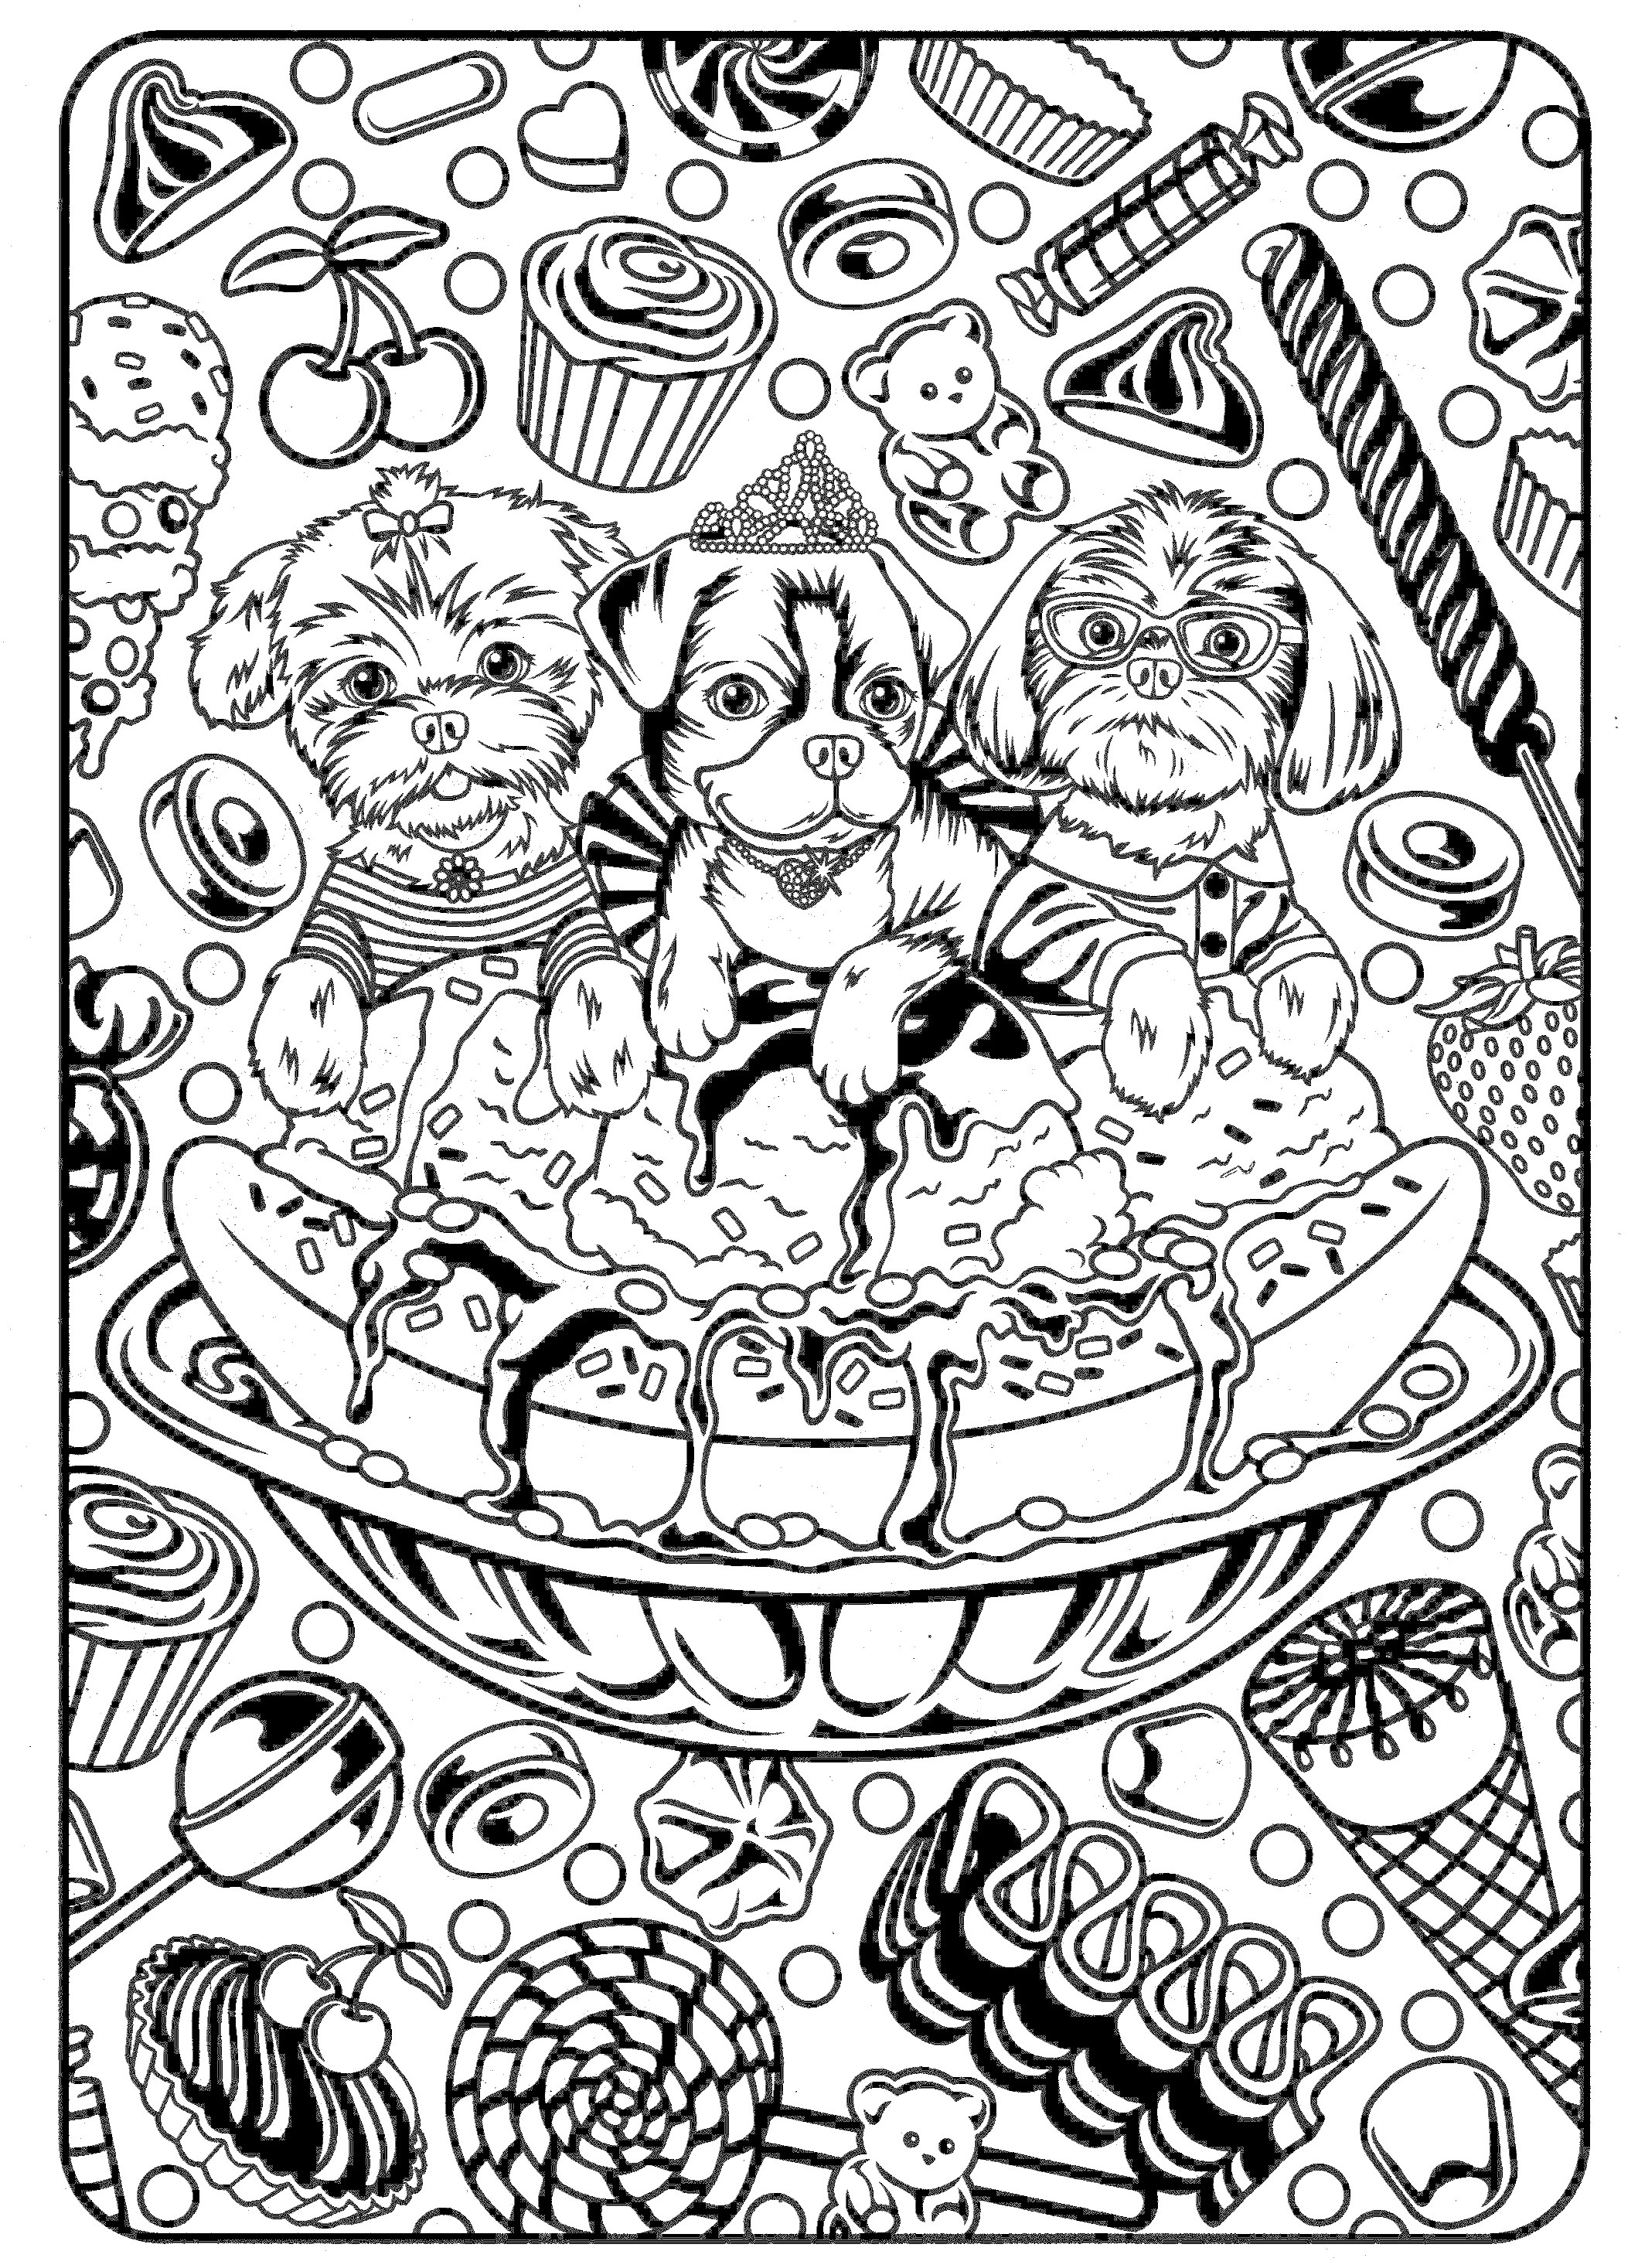 coloring pages for kids to print printable raccoon coloring pages for kids cool2bkids kids pages for to coloring print